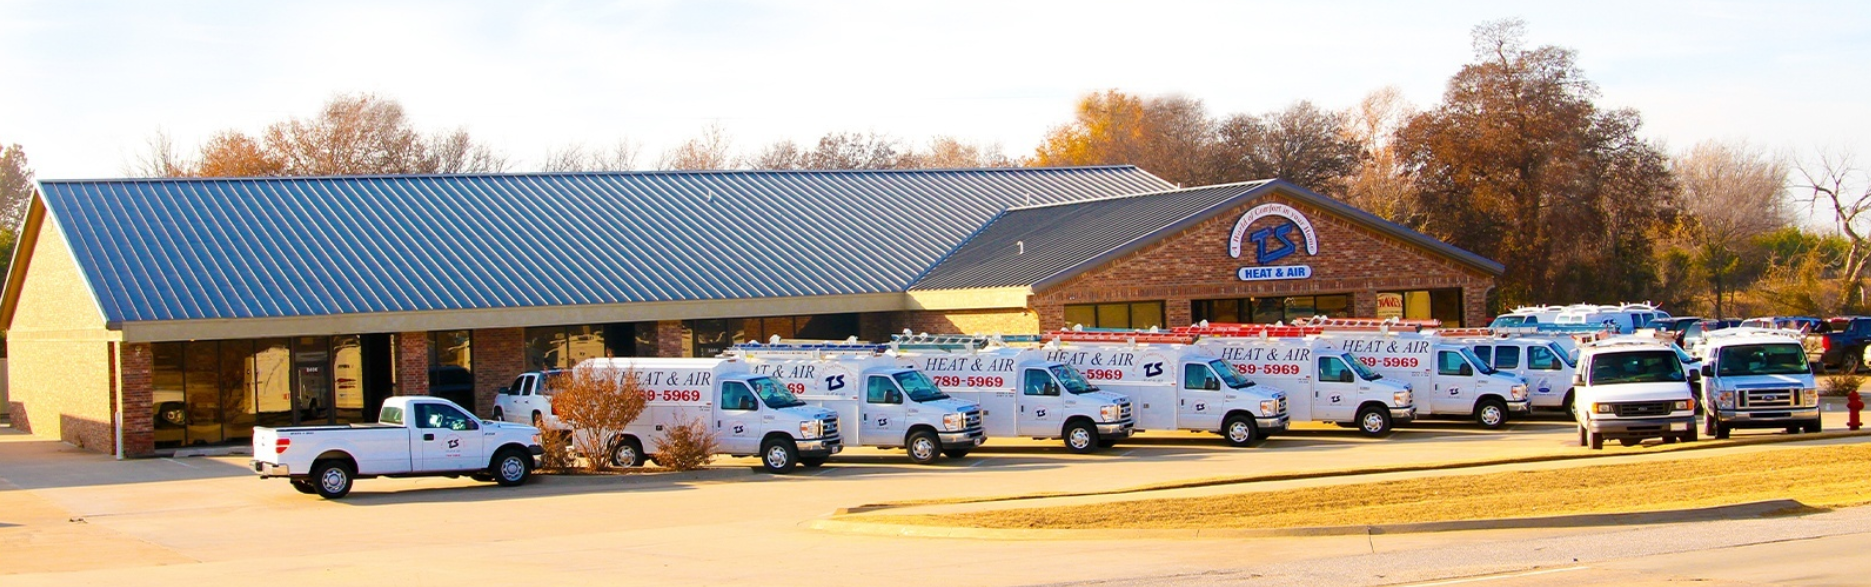 Web TSvans - Are you tired of seeing another OKC HVAC company at the top of Google?